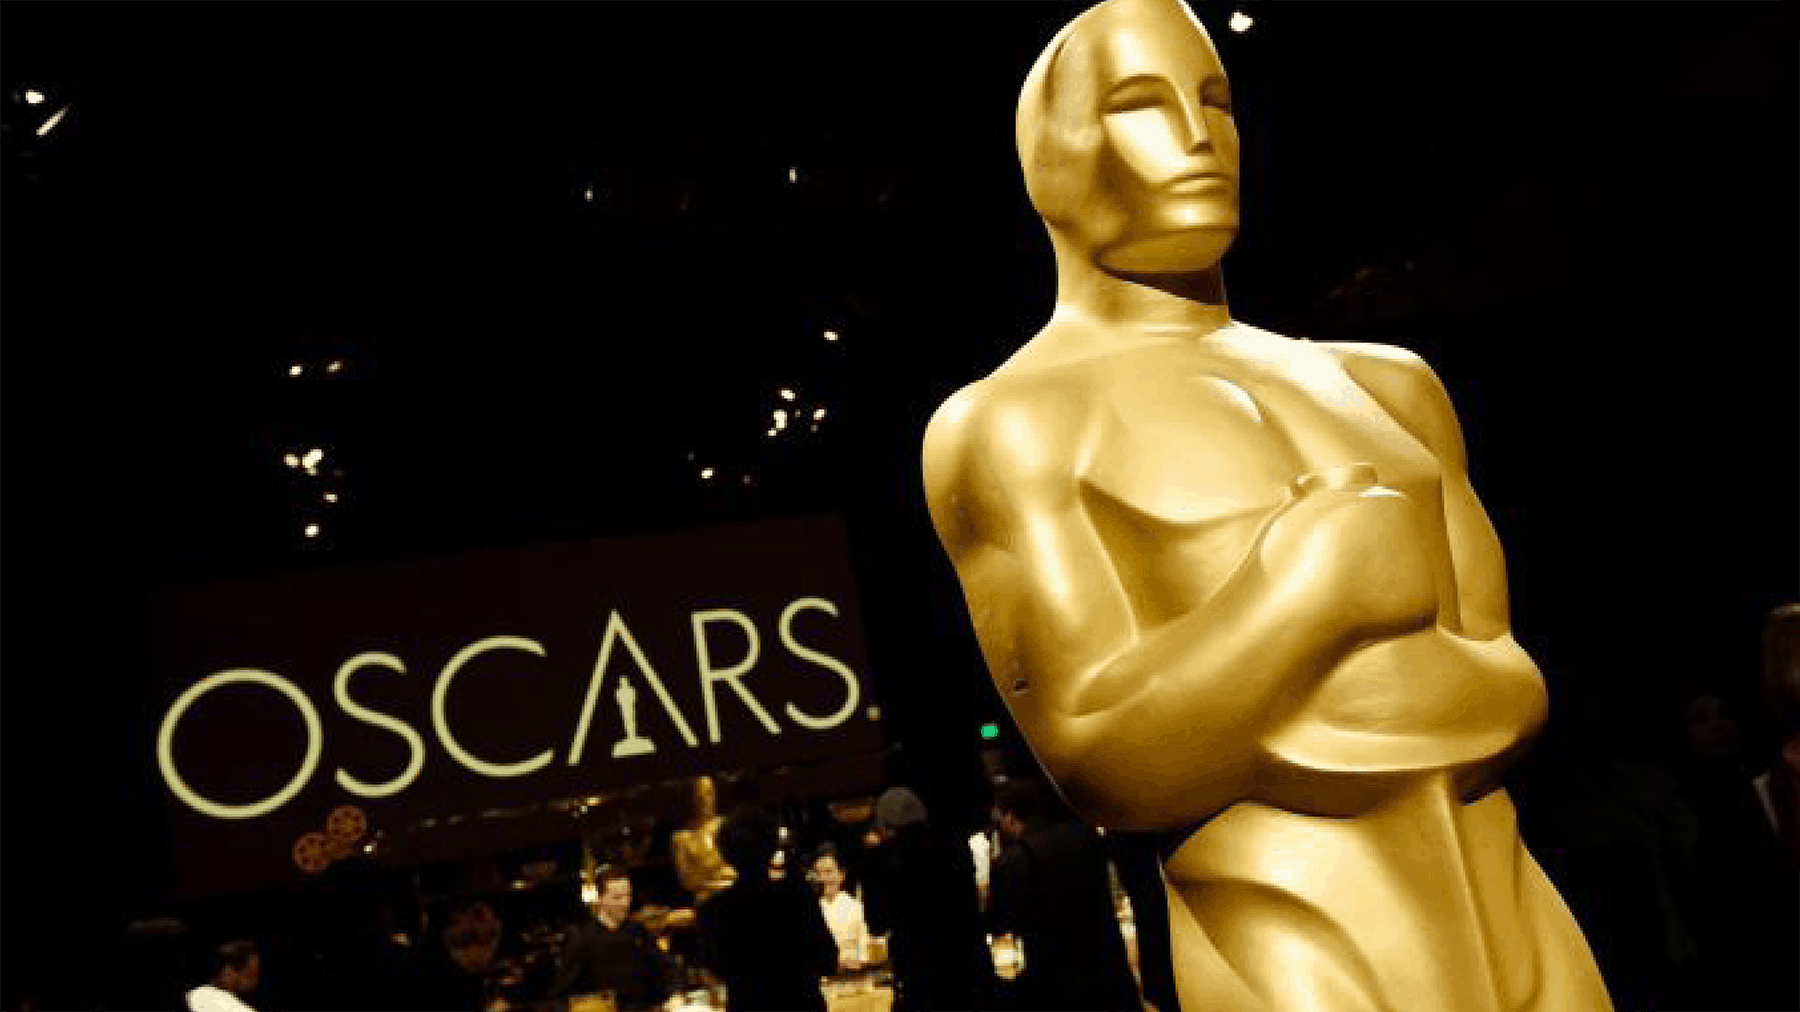 Online video of the Oscars